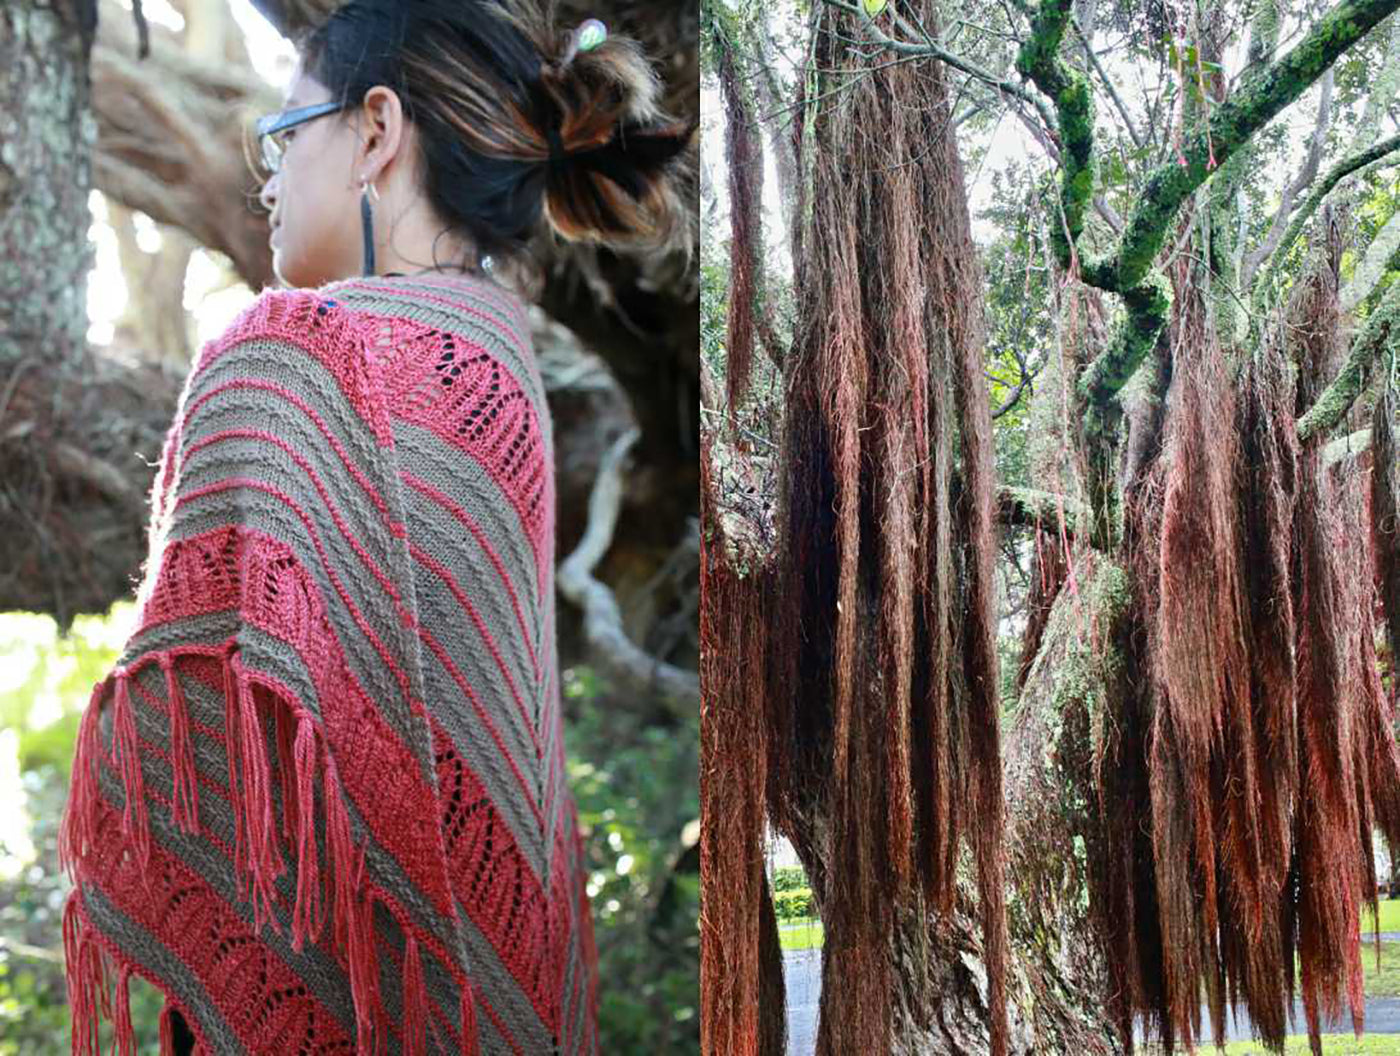 Two photographs.  Left photograph is a women wearing a knitted shawl in pink and tan.  Women is facing away from the camera to show the shawl with a left side profile.  Right side of the image is moss hanging from a tree in similar color palette, shape and drape.